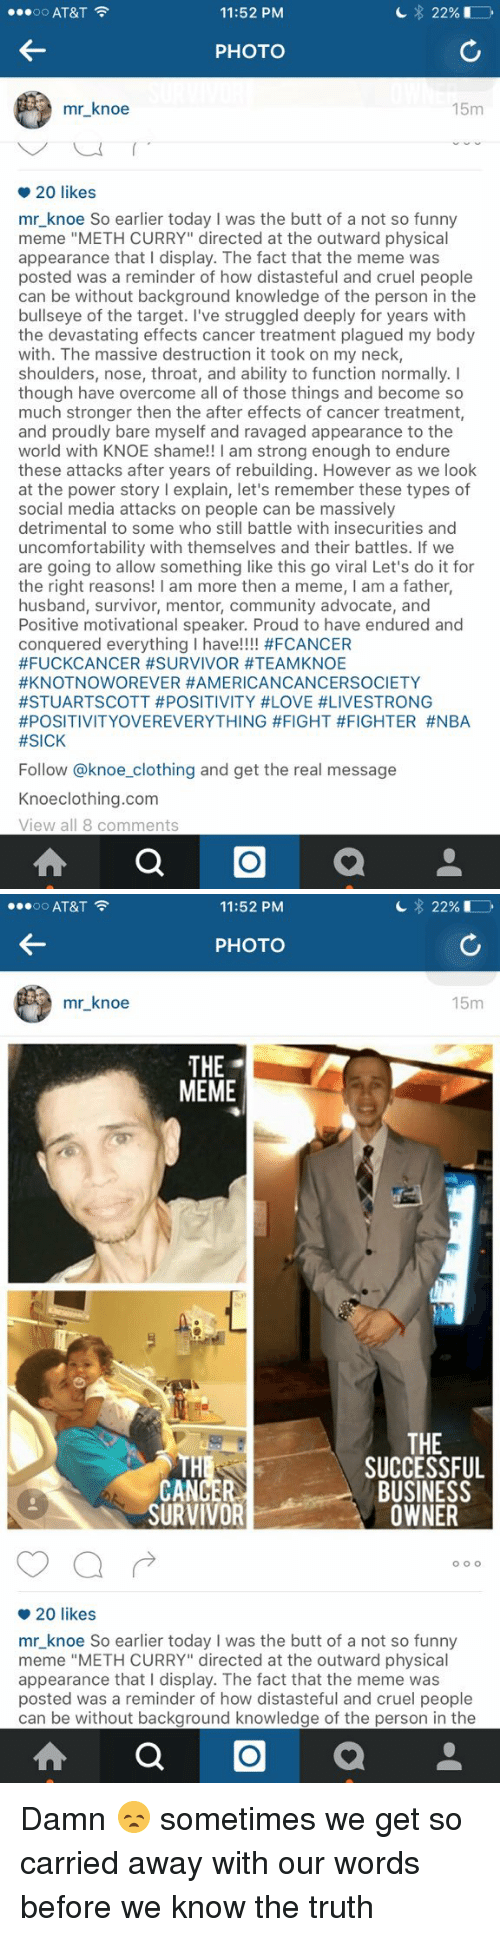 "Blackpeopletwitter, Bodies , and Butt: 11:52 PM  22%  AT&T  OO  PHOTO  mr knoe  15m  o 20 likes  mr knoe So earlier today I was the butt of a not so funny  meme ""METH CURRY"" directed at the outward physical  appearance that I display. The fact that the meme was  posted was a reminder of how distasteful and cruel people  can be without background knowledge of the person in the  bullseye of the target. I've struggled deeply for years with  the devastating effects cancer treatment plagued my body  with. The massive destruction it took on my neck,  shoulders, nose, throat, and ability to function normally. I  though have overcome all of those things and become so  much stronger then the after effects of cancer treatment,  and proudly bare myself and ravaged appearance to the  world with KNOE shame!! I am strong enough to endure  these attacks after years of rebuilding. However as we look  at the power story explain, let's remember these types of  social media attacks on people can be massively  detrimental to some who still battle with insecurities and  uncomfortability with themselves and their battles. If we  are going to allow something like this go viral Let's do it for  the right reasons  I am more then a meme, I am a father,  husband, survivor, mentor, community advocate, and  Positive motivational speaker. Proud to have endured and  conquered everything I have  #FCANCER  #FUCKCANCER #SURVIVOR #TEAMKNOE  #KNOTNOWOREVER HAMERICANCANCERSOCIETY  #STUARTSCOTT #POSITIVITY #LOVE #LIVESTRONG  #POSITIVITYOVEREVERYTHING #FIGHT #FIGHTER #NBA  #SICK  Follow @knoe clothing and get the real message  Knoe clothing.com  View all 8 comments  a   11:52 PM  22%  OO  AT&T  PHOTO  mr knoe  15m  THE  MEME  THE  SUCCESSFUL  BUSINESS  SURVIVOR  OWNER  O OO  20 likes  mr knoe So earlier today I was the butt of a not so funny  meme ""METH CURRY"" directed at the outward physical  appearance that I display. The fact that the meme was  posted was a reminder of how distasteful and cruel people  can be without background knowledge of the person in the  a Damn 😞 sometimes we get so carried away with our words before we know the truth"